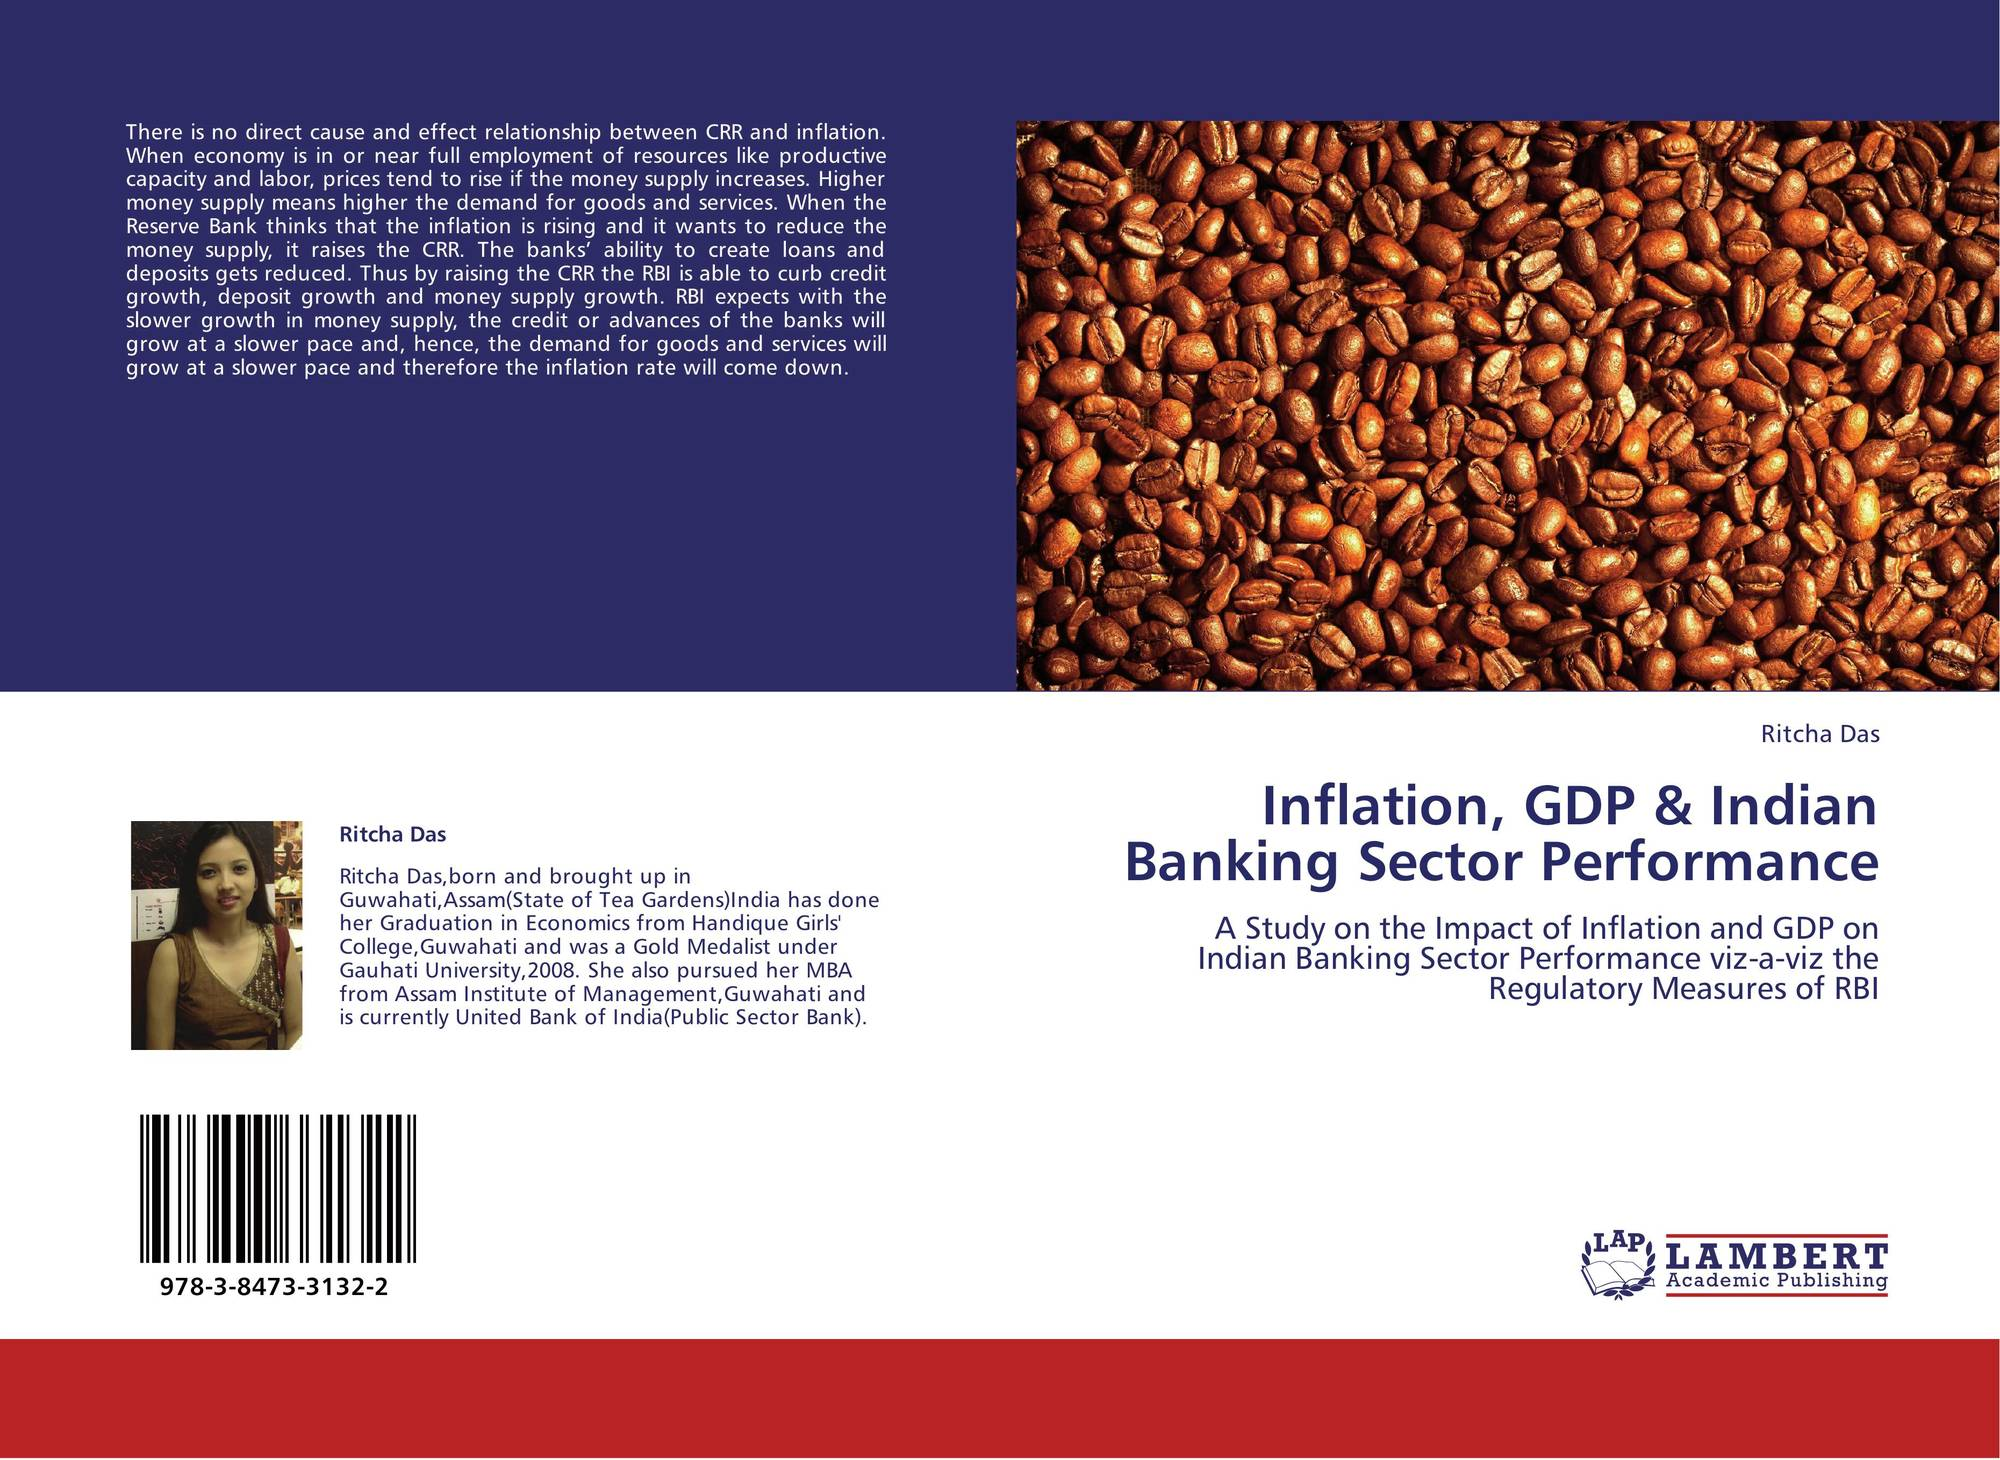 banking performance A performance bank guarantee provides a secure promise of compensation of a set amount in the event that a seller does not meet delivery terms or other provisions in the contract the purpose of this sort of guarantee is to solidify the contractual connection between a seller and buyer in general.